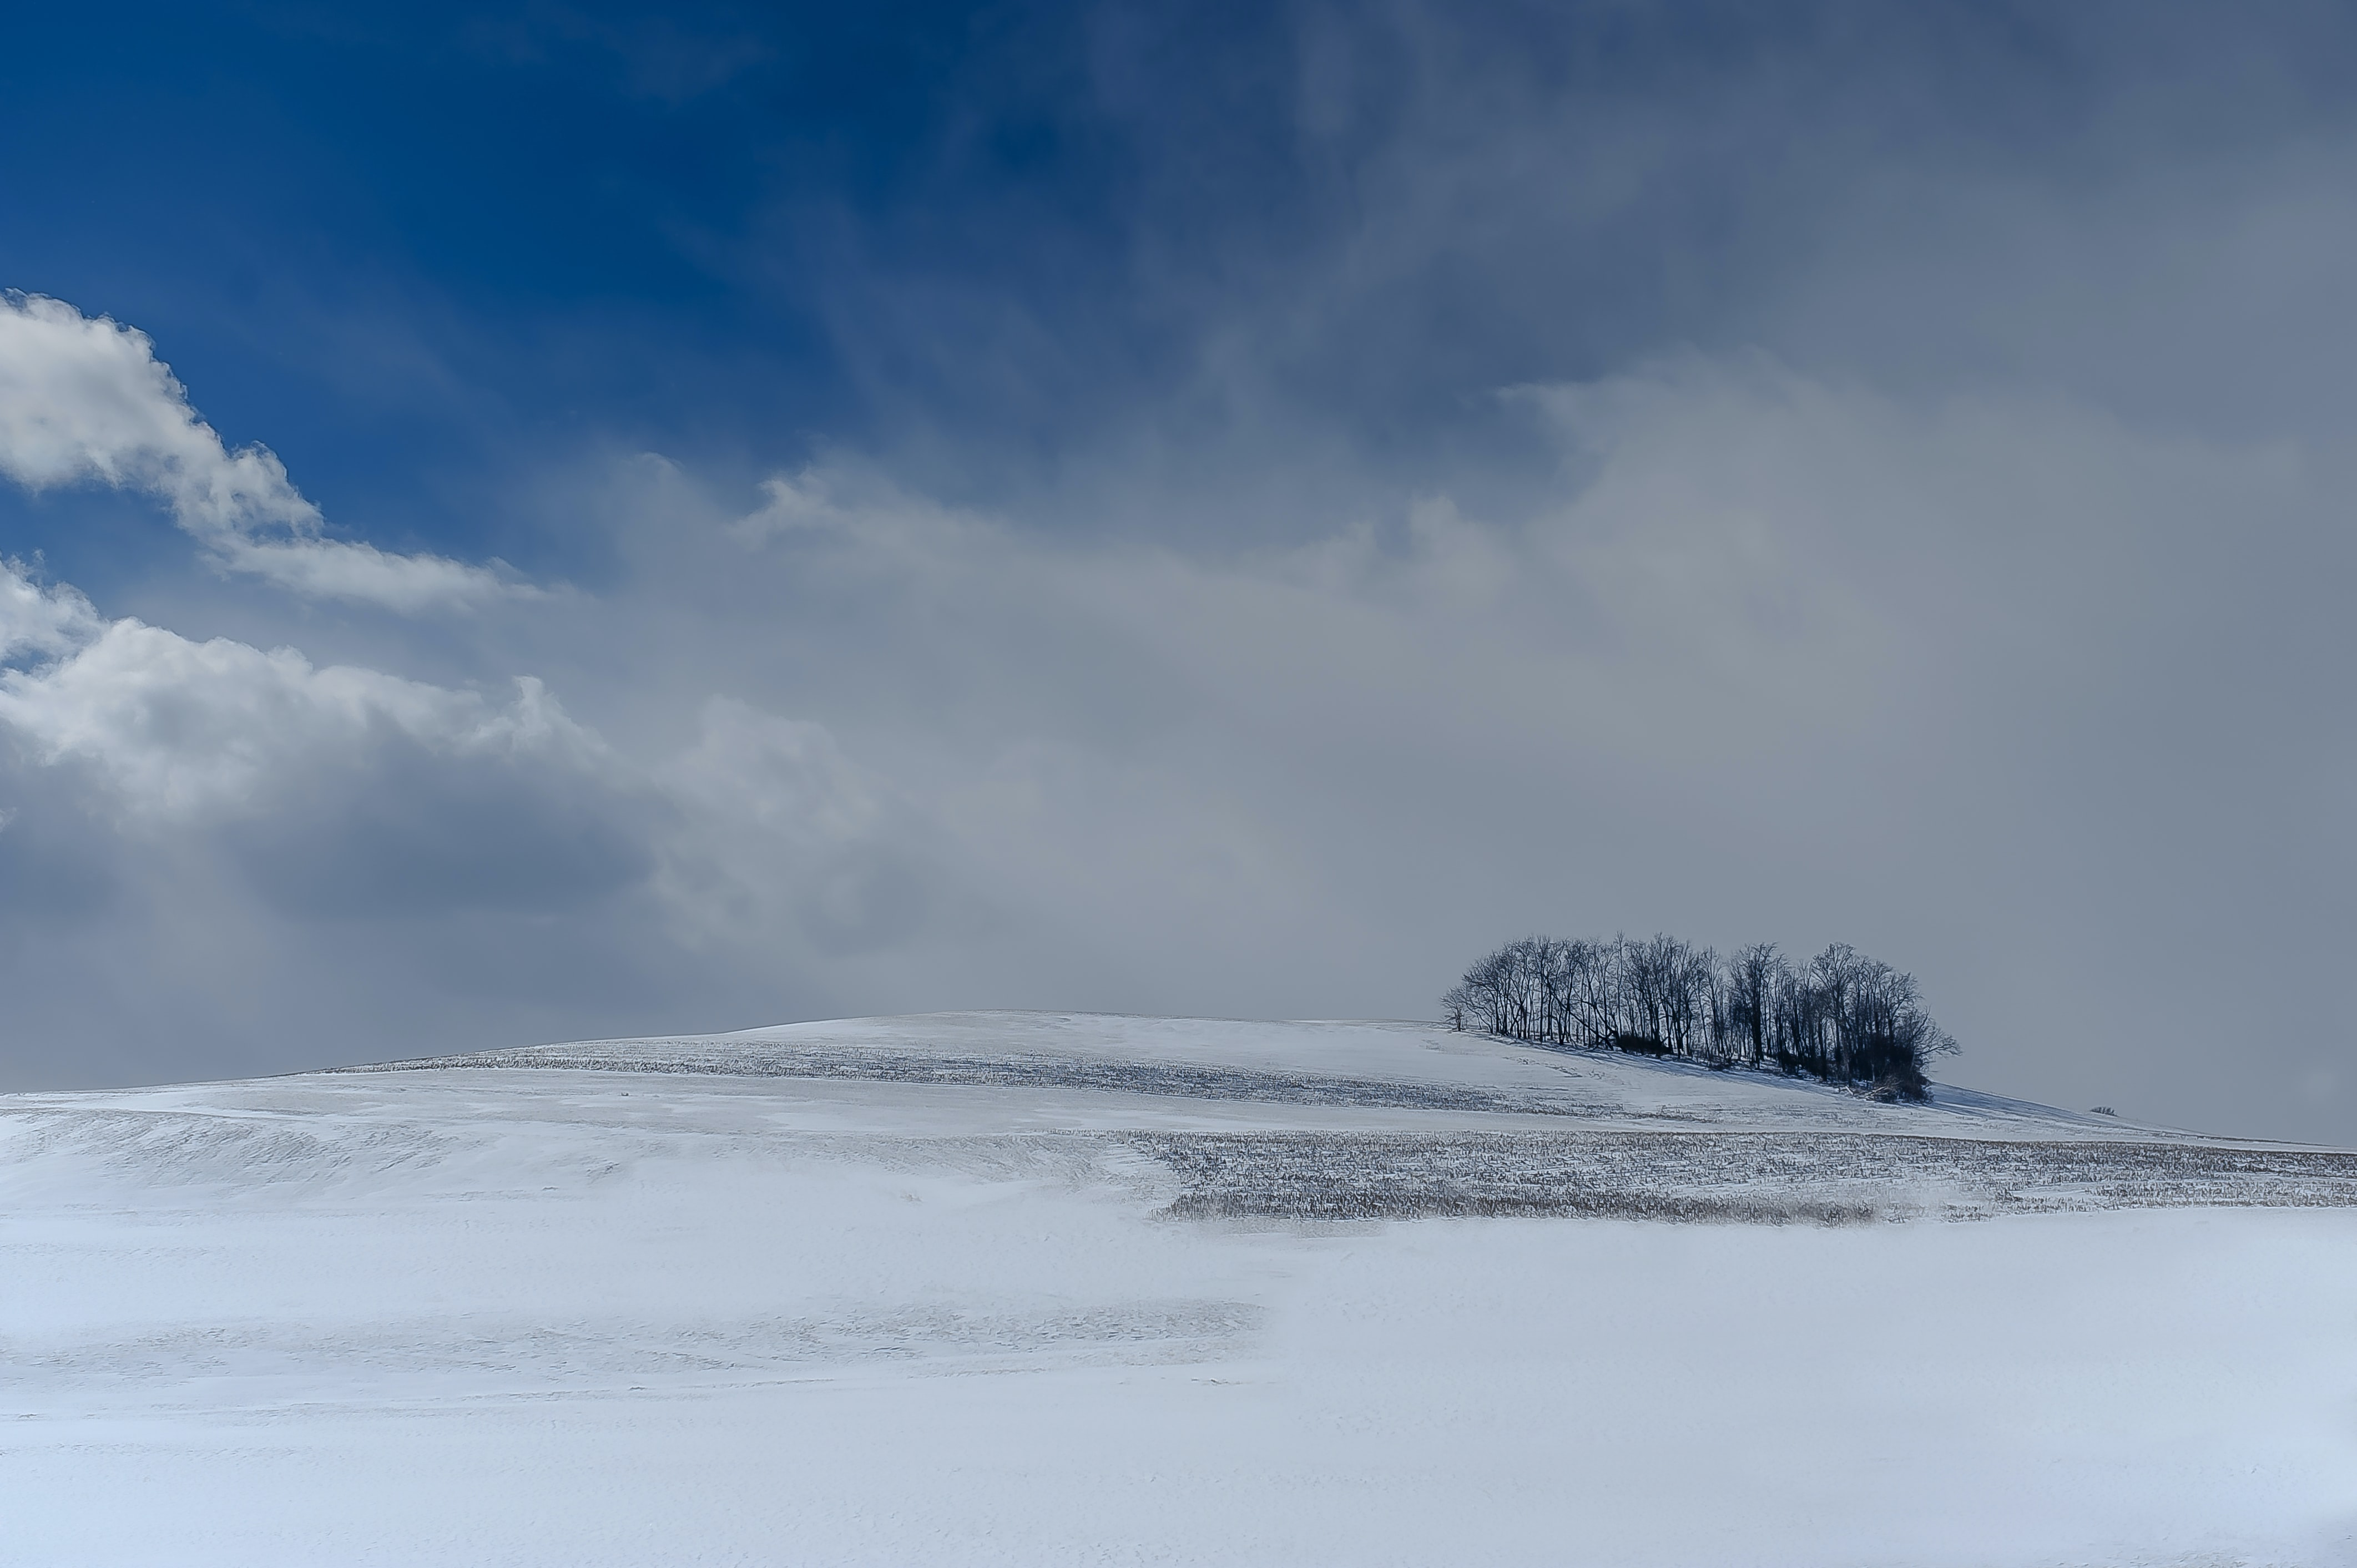 Fluffy clouds swept across sky, hovering over open snowy land and group of trees